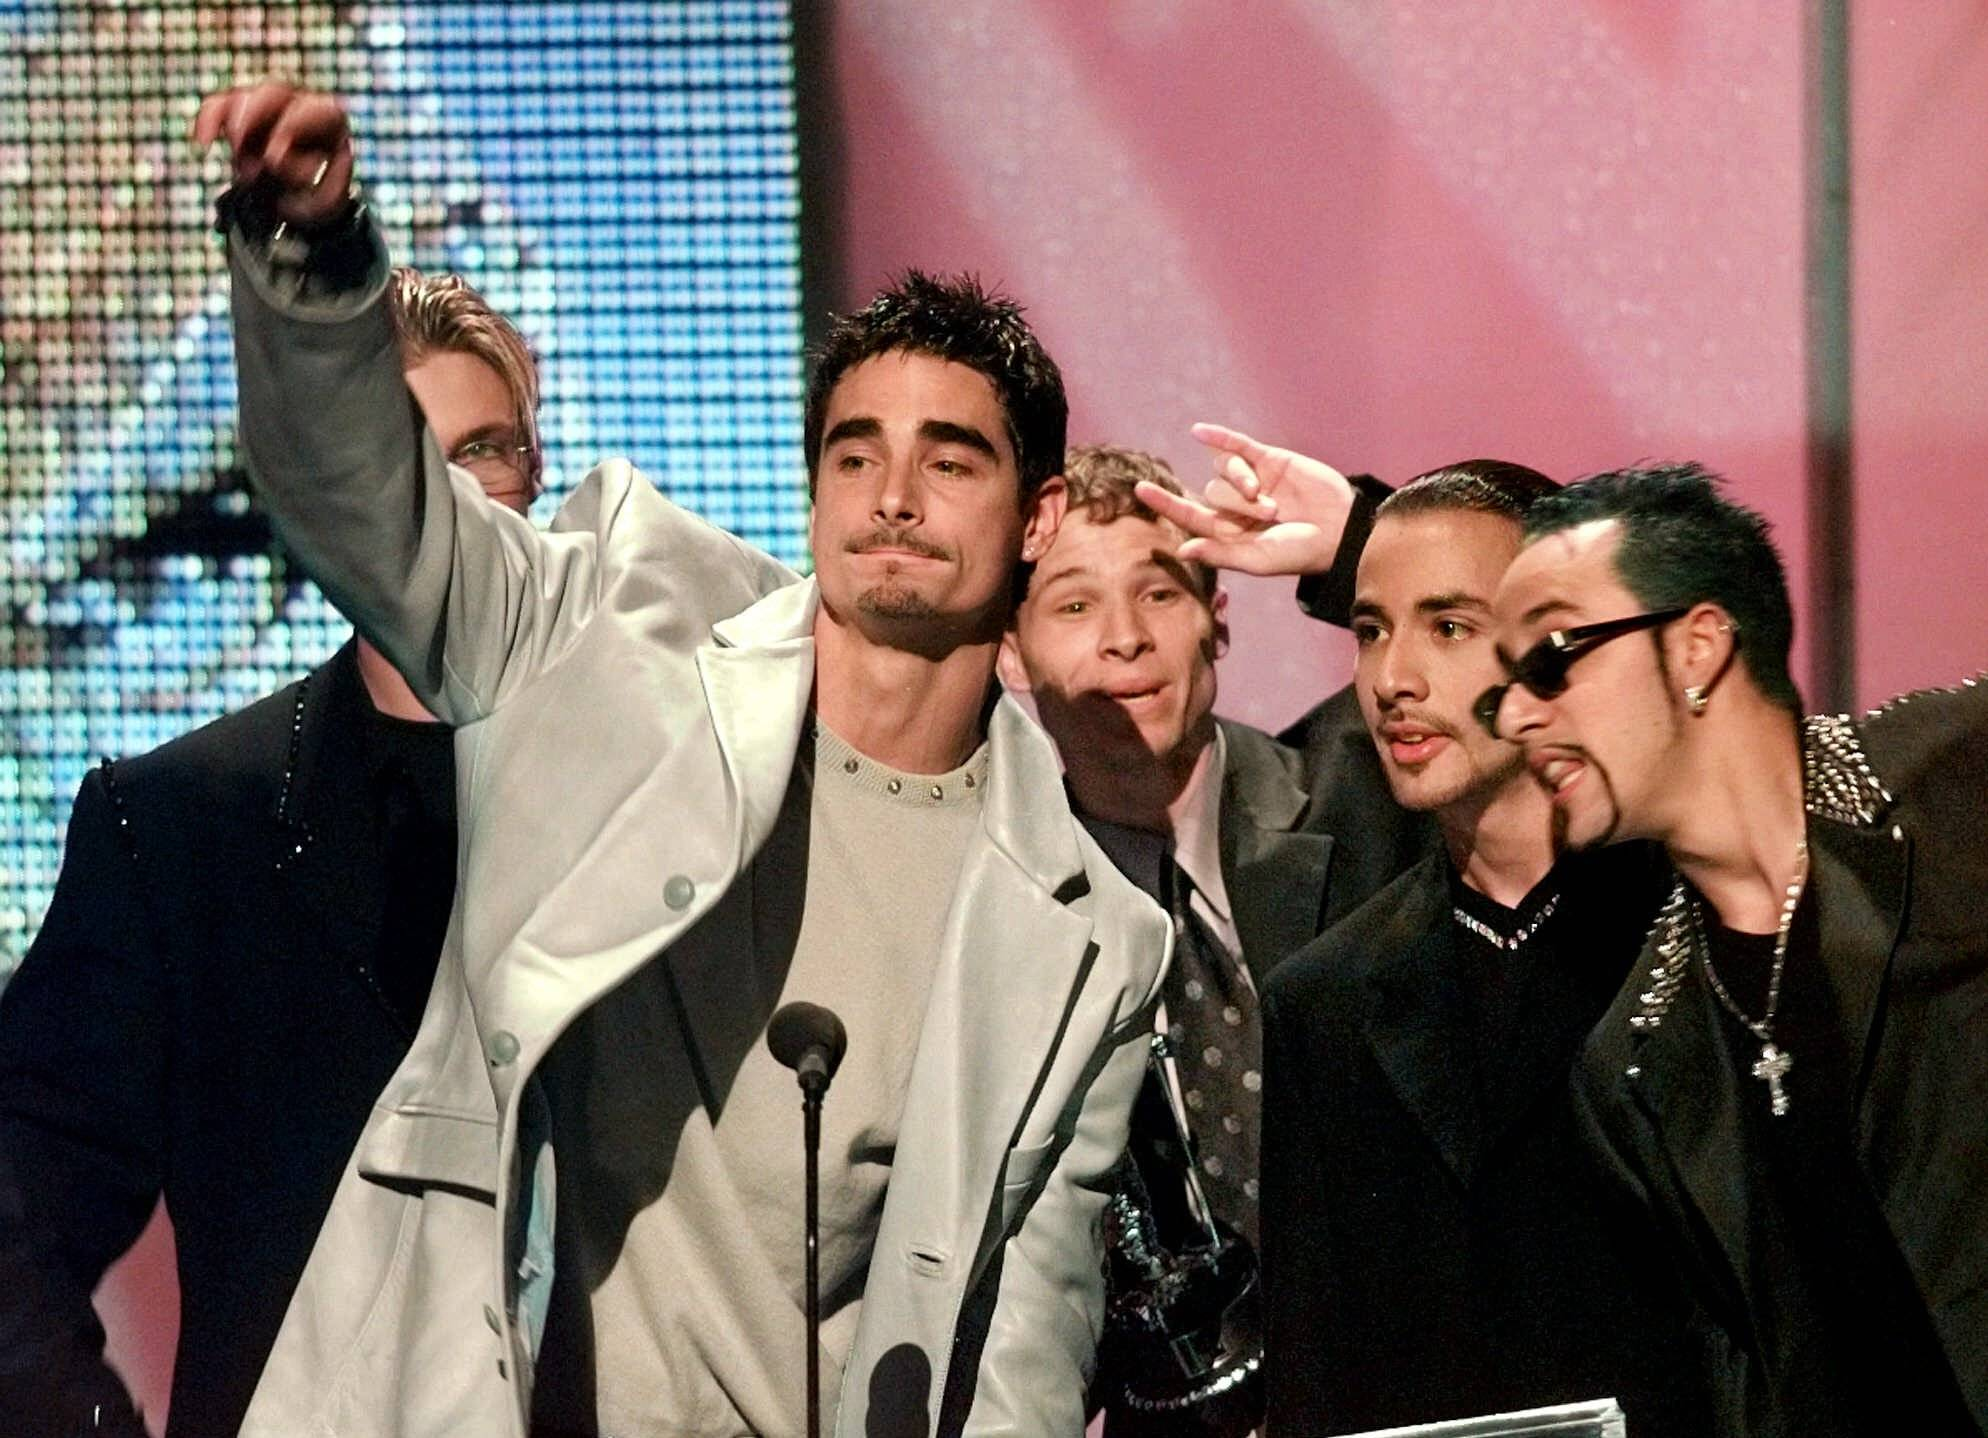 """The Backstreet Boys"" give thanks to the audience for Best Group Video during the MTV Video Music Awards in 1998."